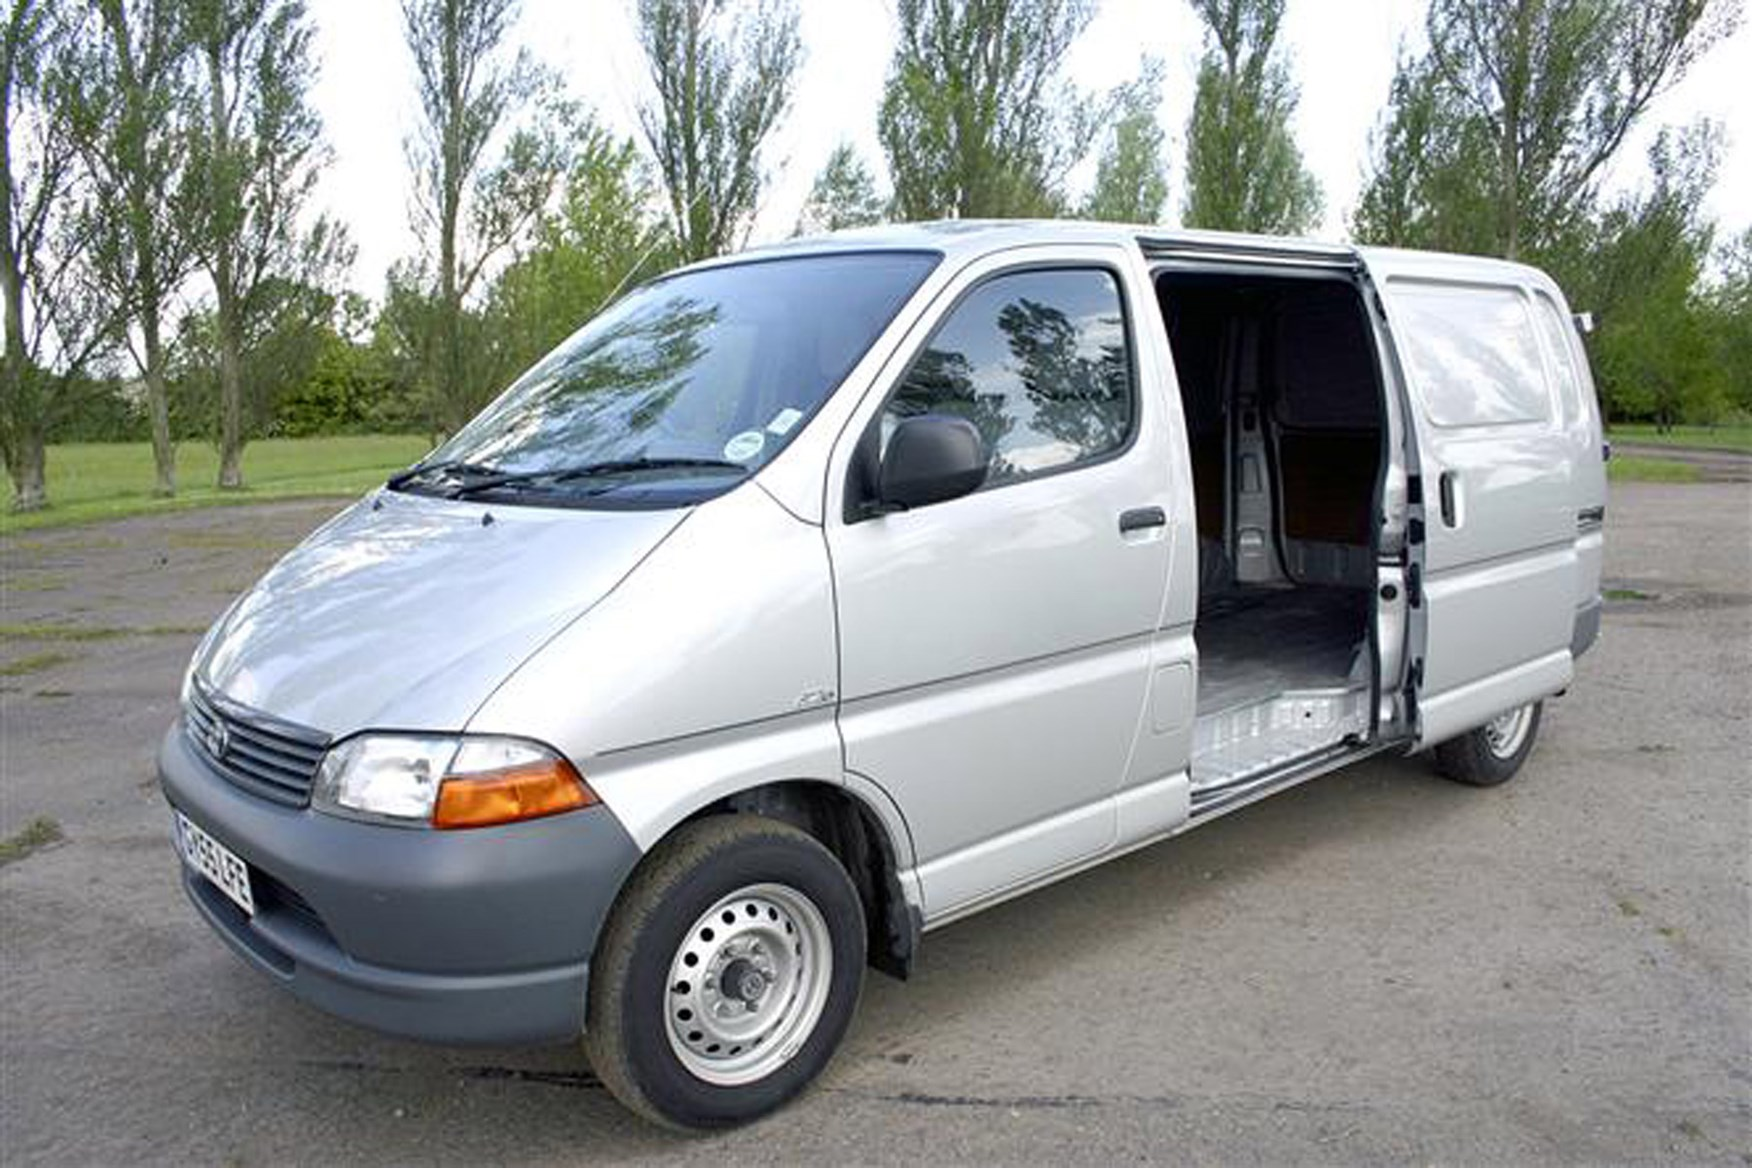 4cac21cc32 Toyota Hiace review on Parkers Vans - load area access